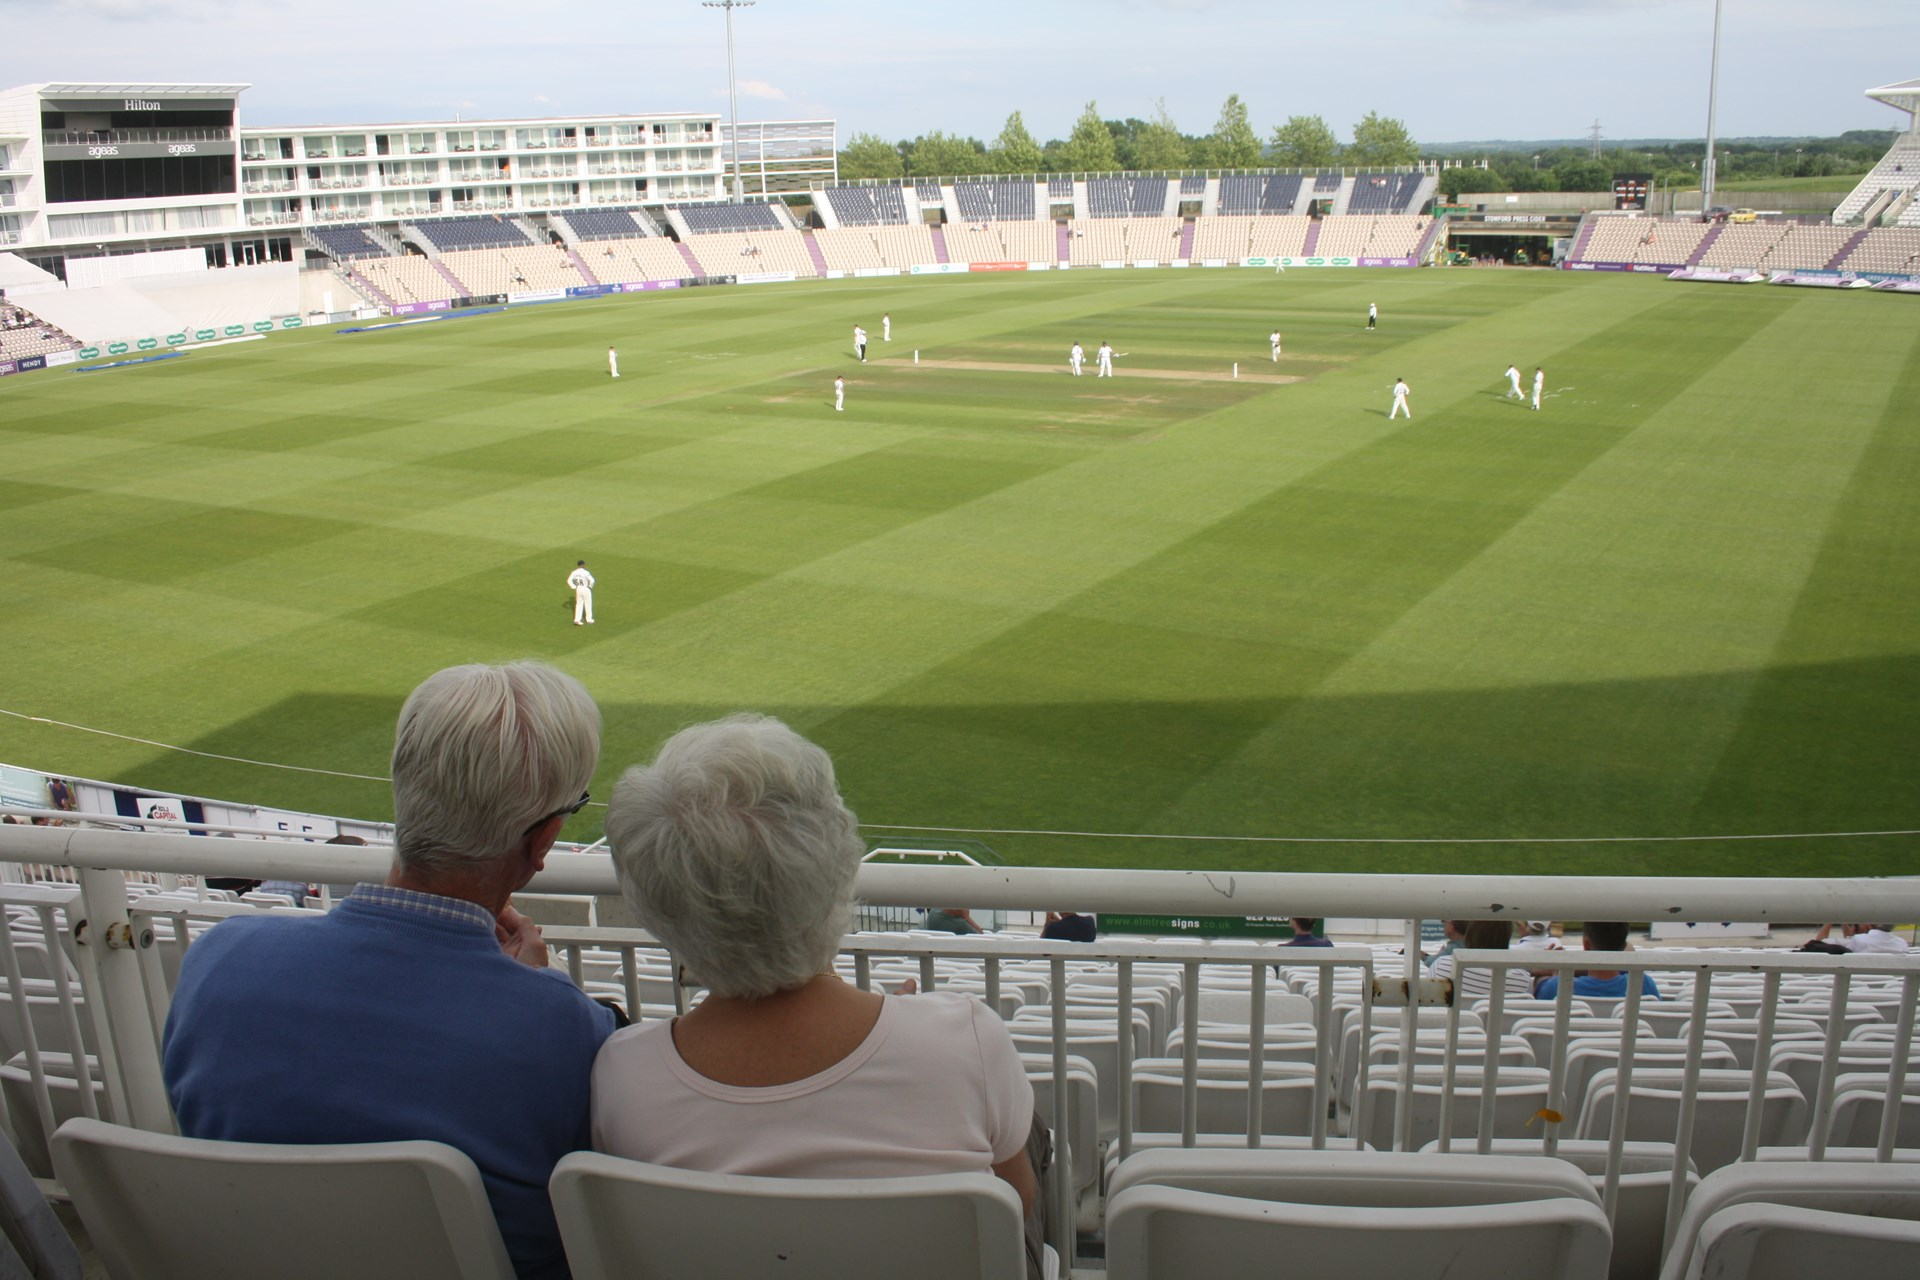 Partnering with Hampshire Cricket we provide opportunities to watch County Matches in a supported environment